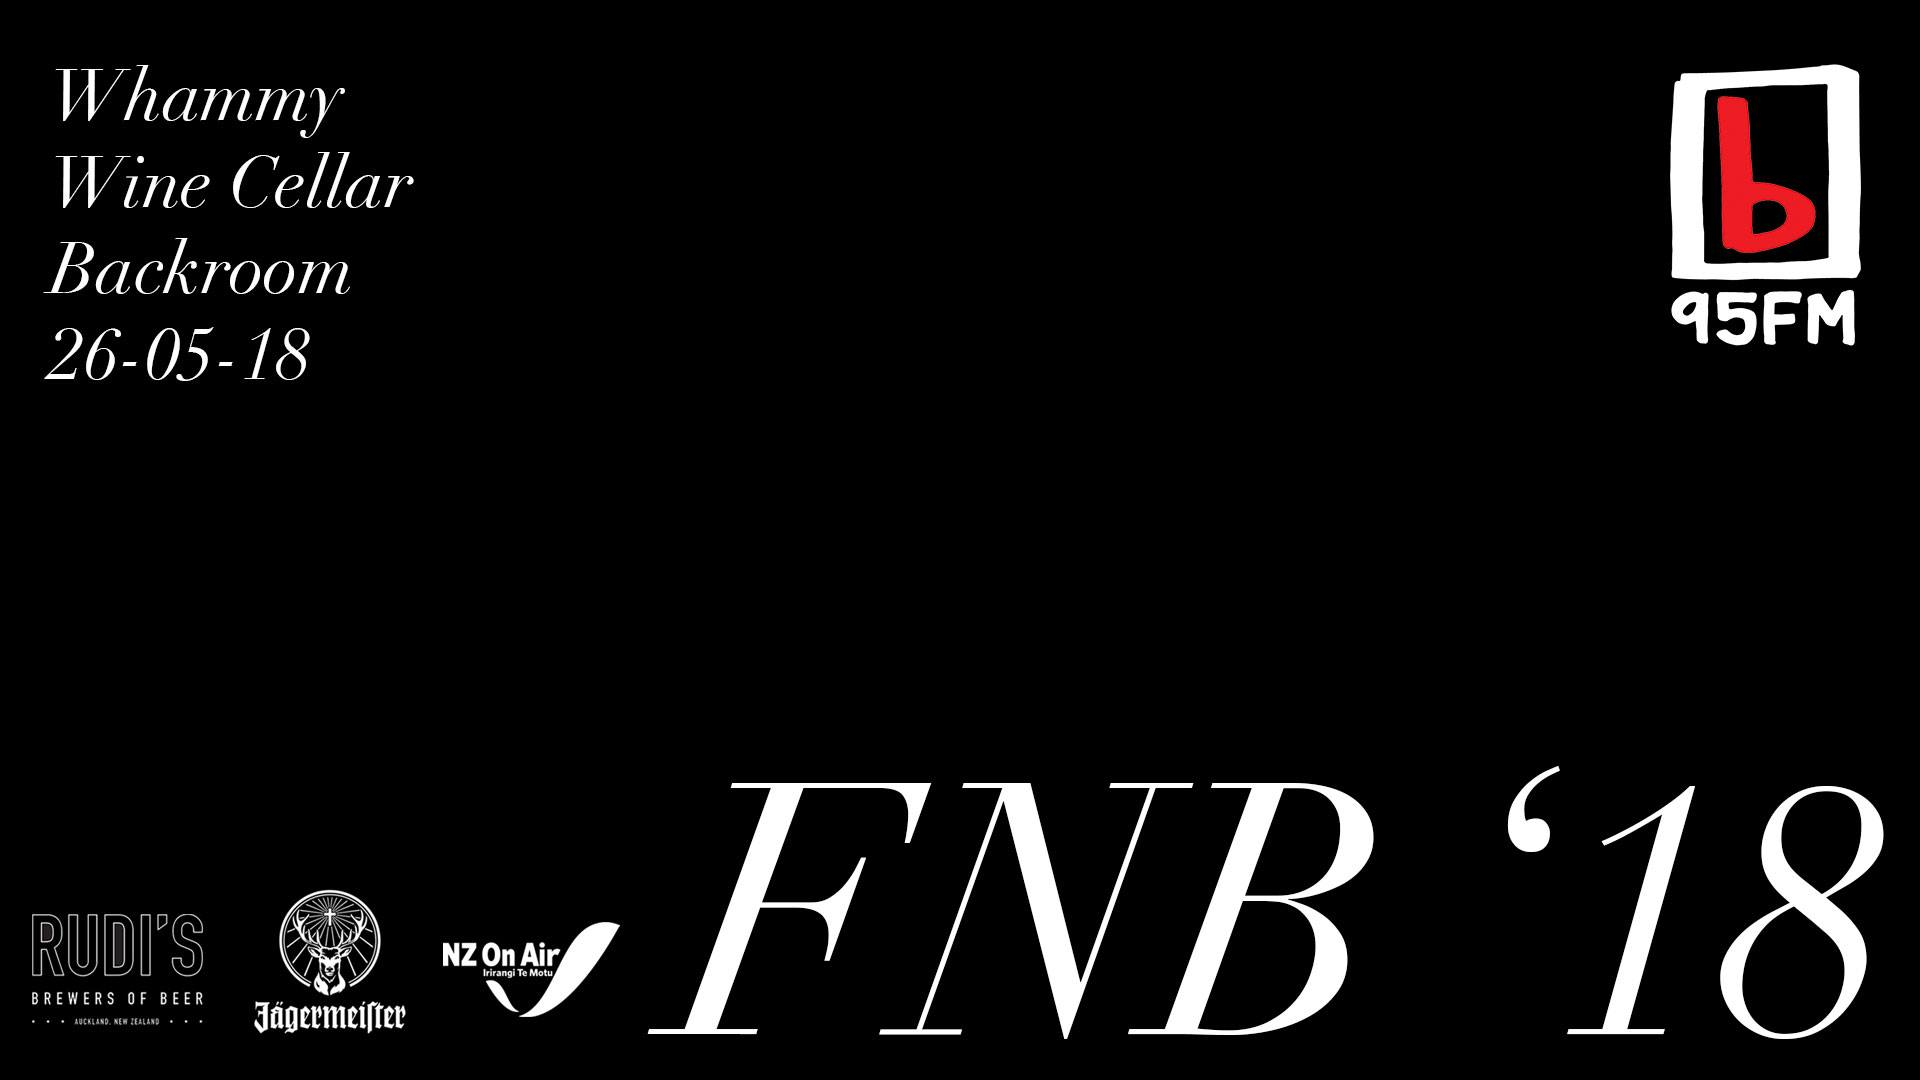 95bfm Fancy New Band 2018